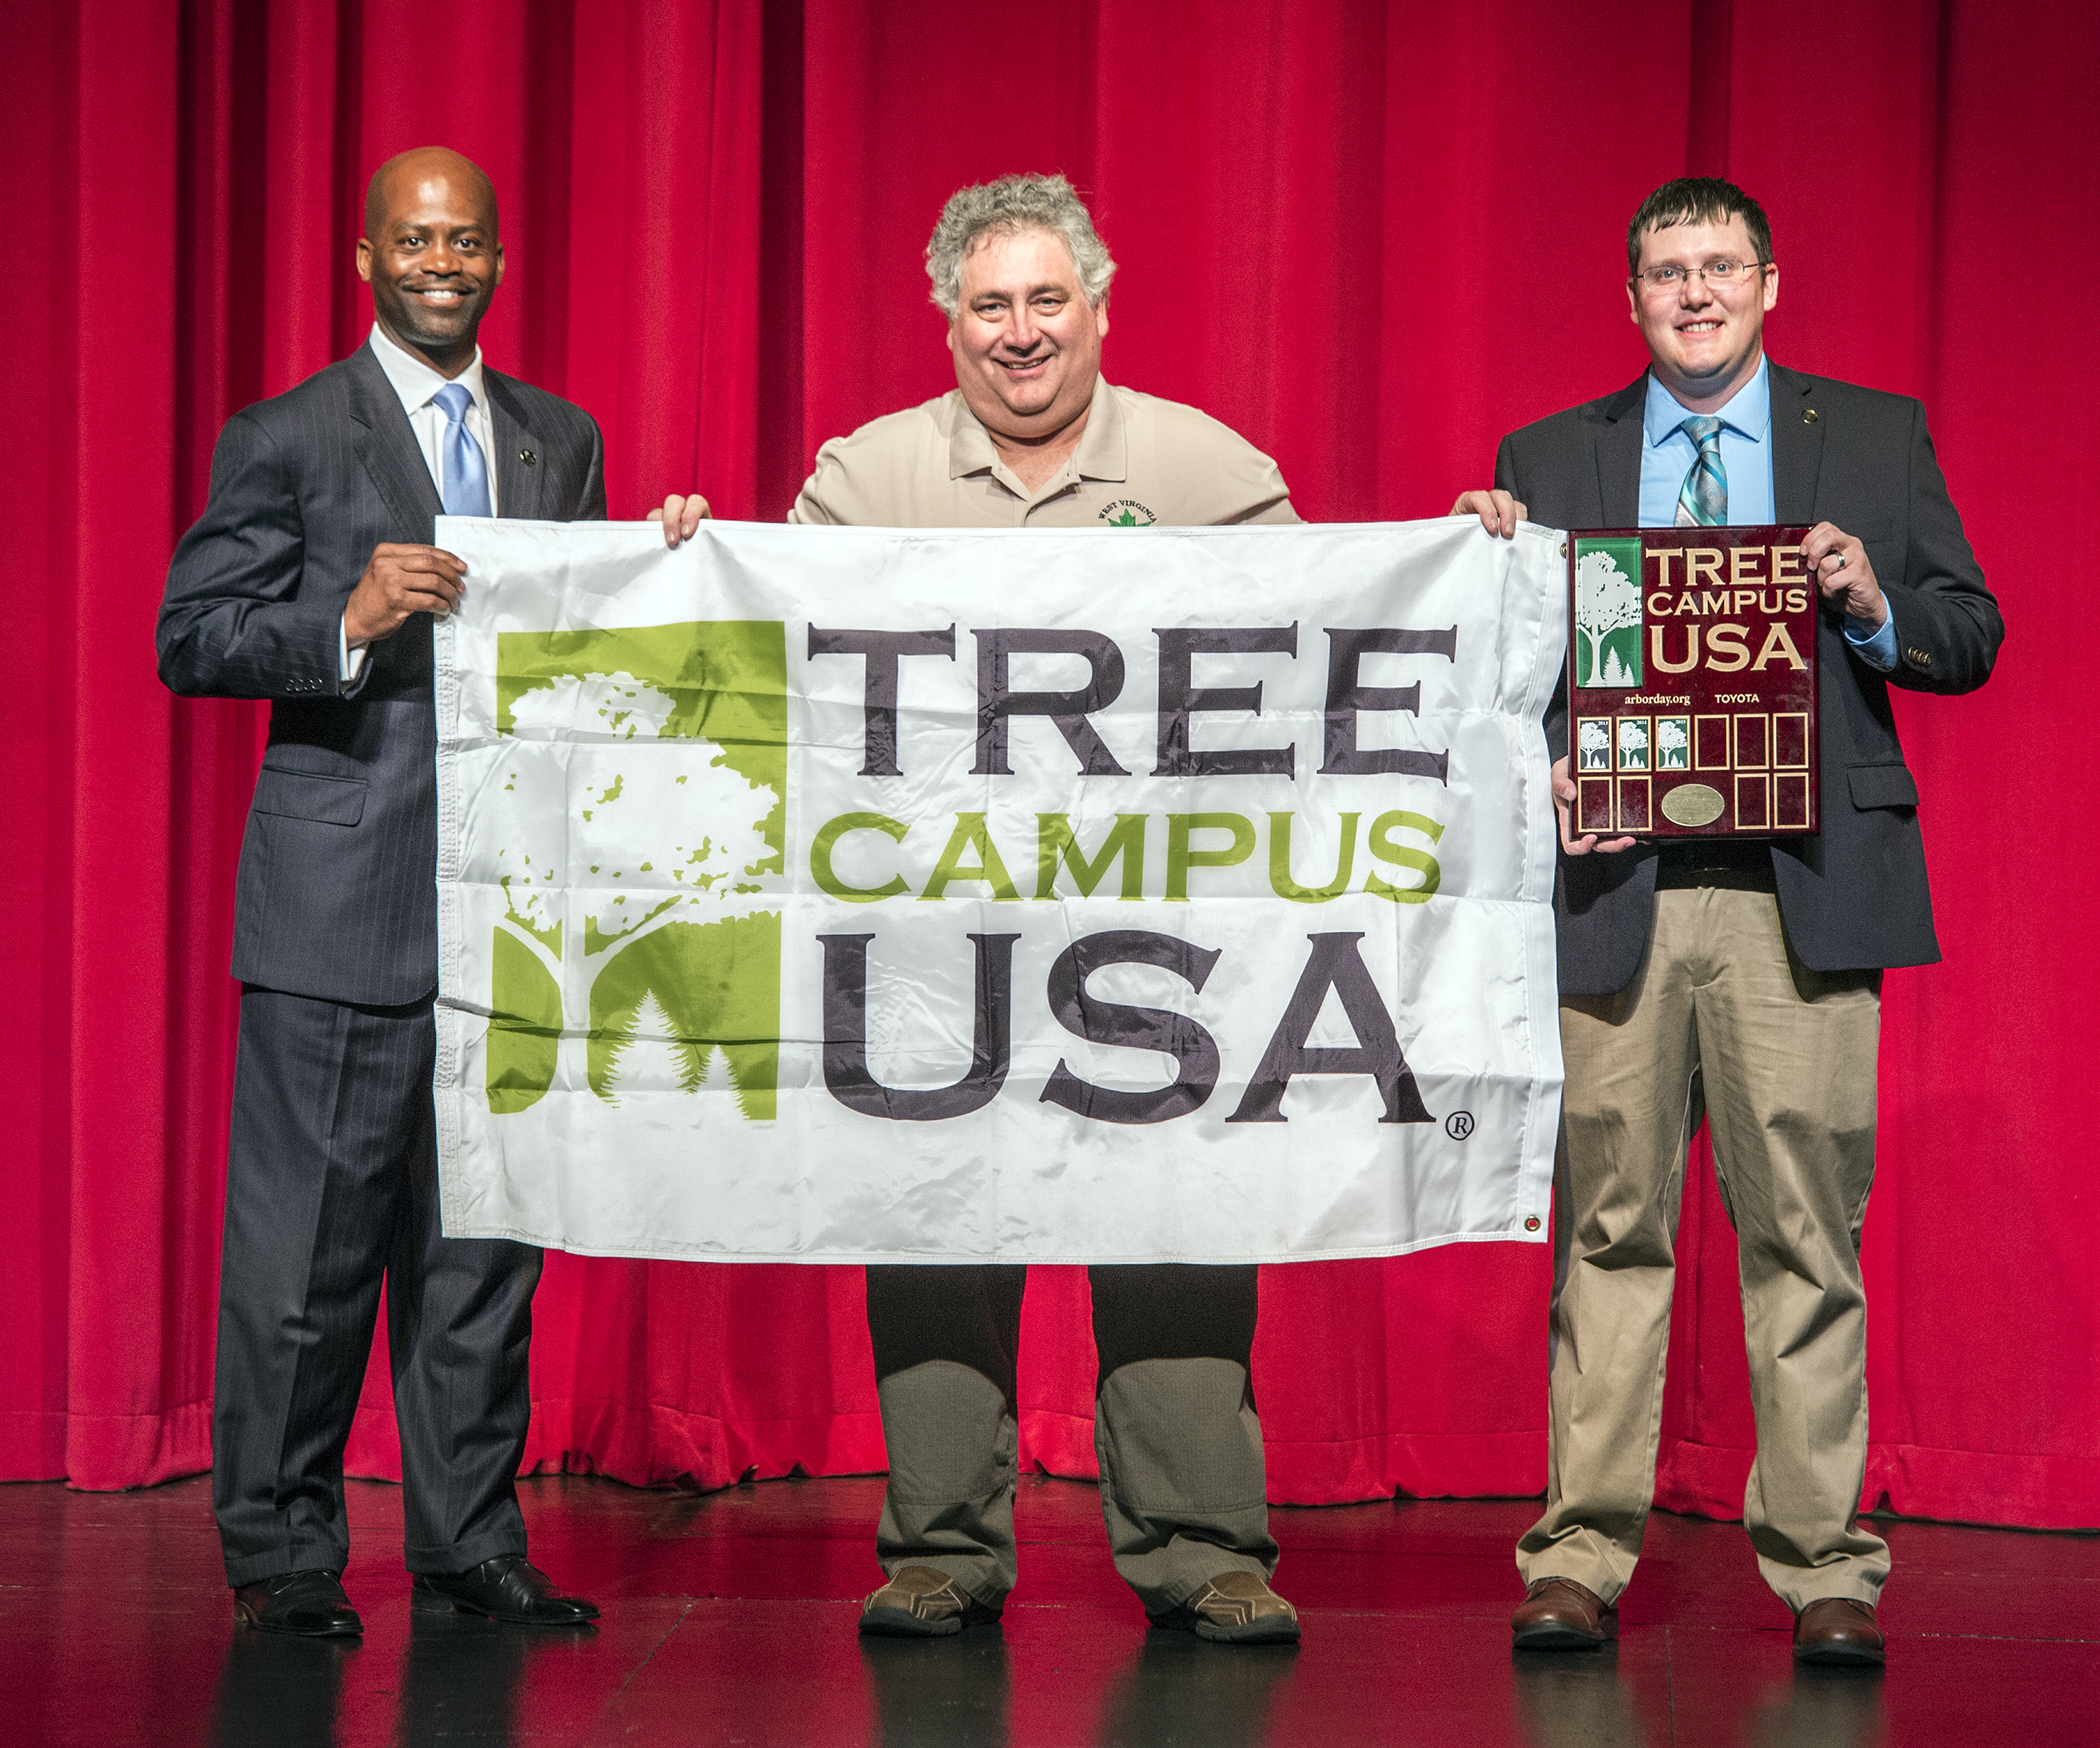 Earth Day 2017 includes Tree Campus USA presentation